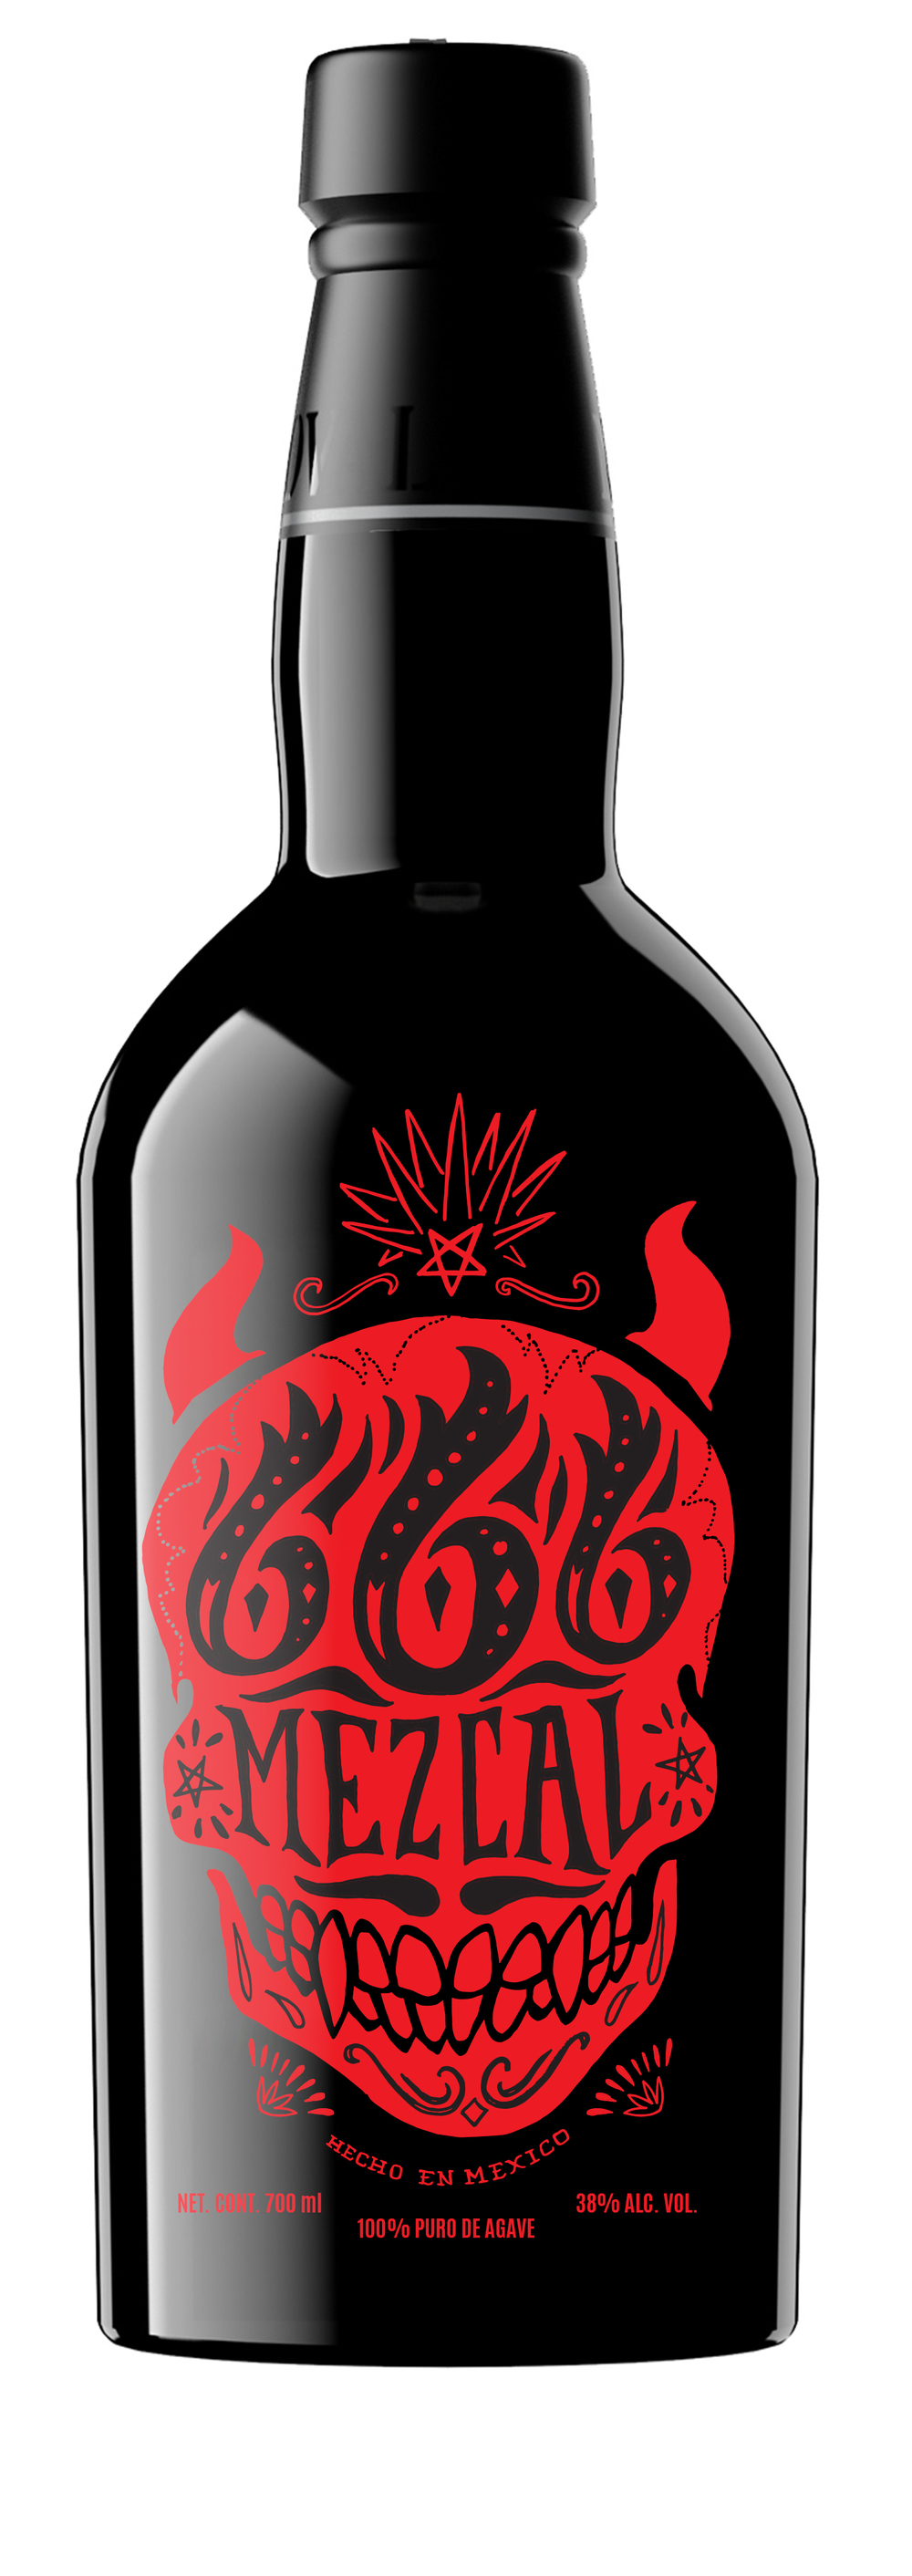 Mezcal 666 Black Bottles2 opt2_0001_all red.jpg